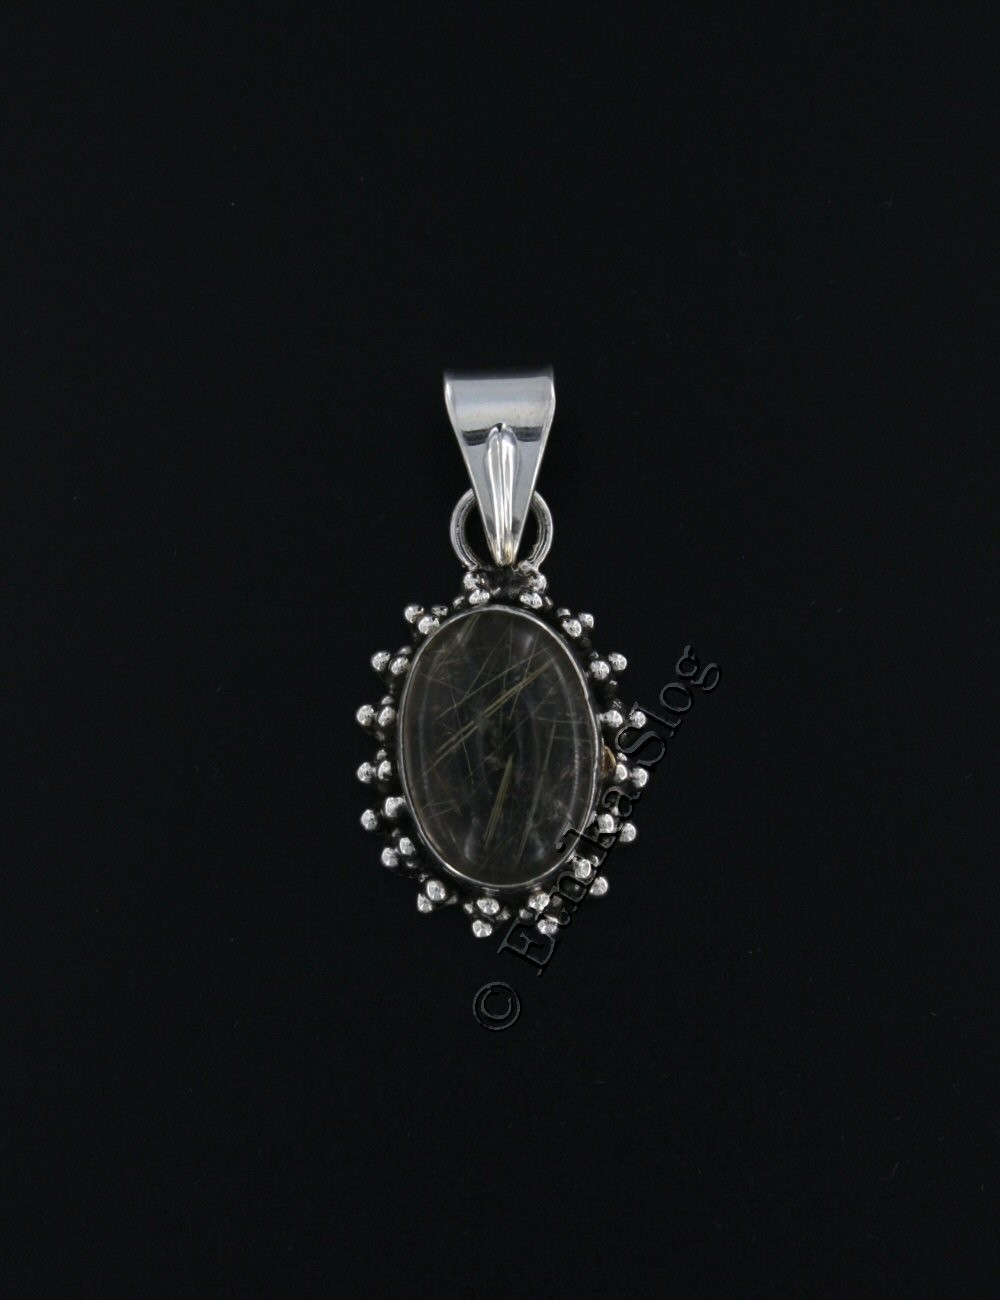 SILVER AND STONE PENDANTS ARG-PP550-01 - Oriente Import S.r.l.